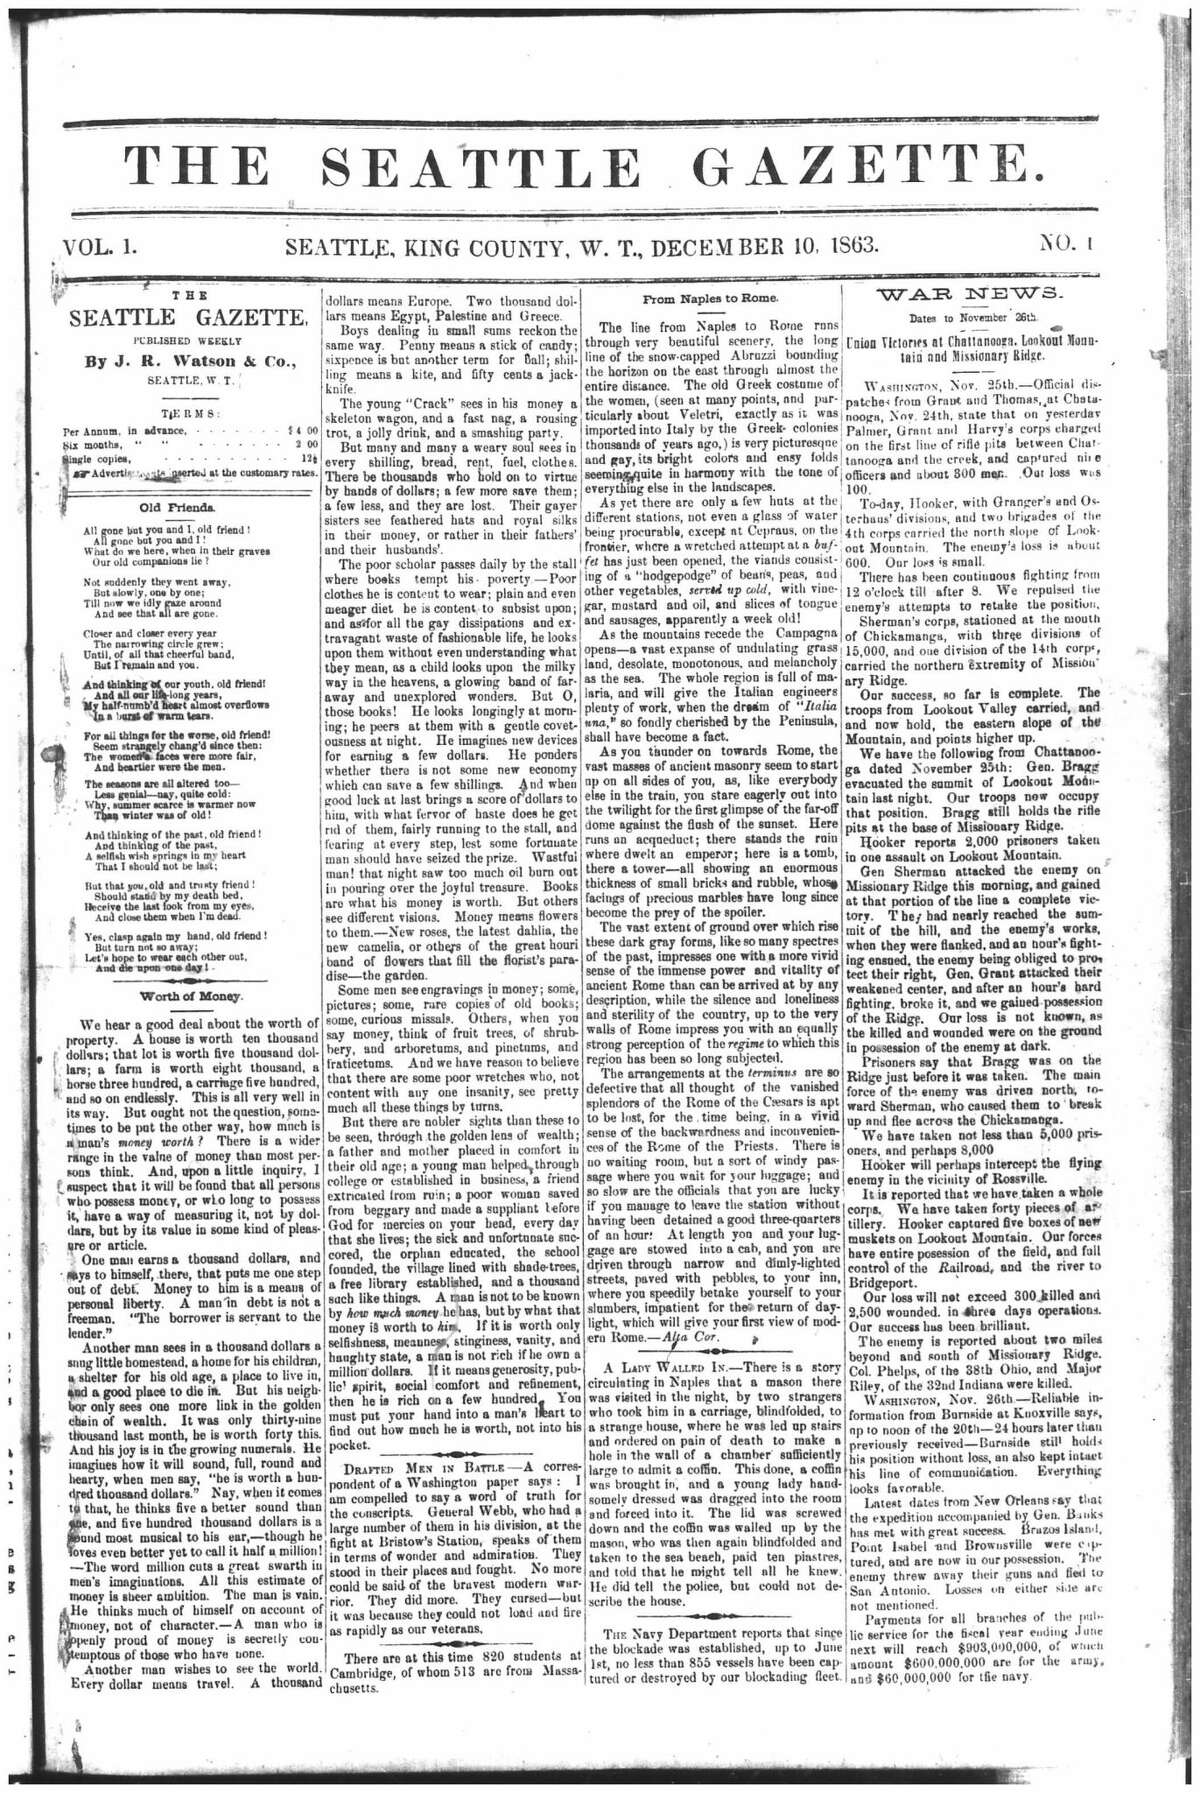 Here's the first edition of The Seattle Gazette, which is considered the debut issue of what was to become The Seattle Post-Intelligencer: Dec. 10, 1863. Stories of the front page included a poem about friendship in old age, Civil War news and a harrowing story from Naples, Italy, in which a mason was kidnapped to carve a hole out of a wall, where a young woman was forced into a coffin that was then inserted into the hole and walled off by the mason.